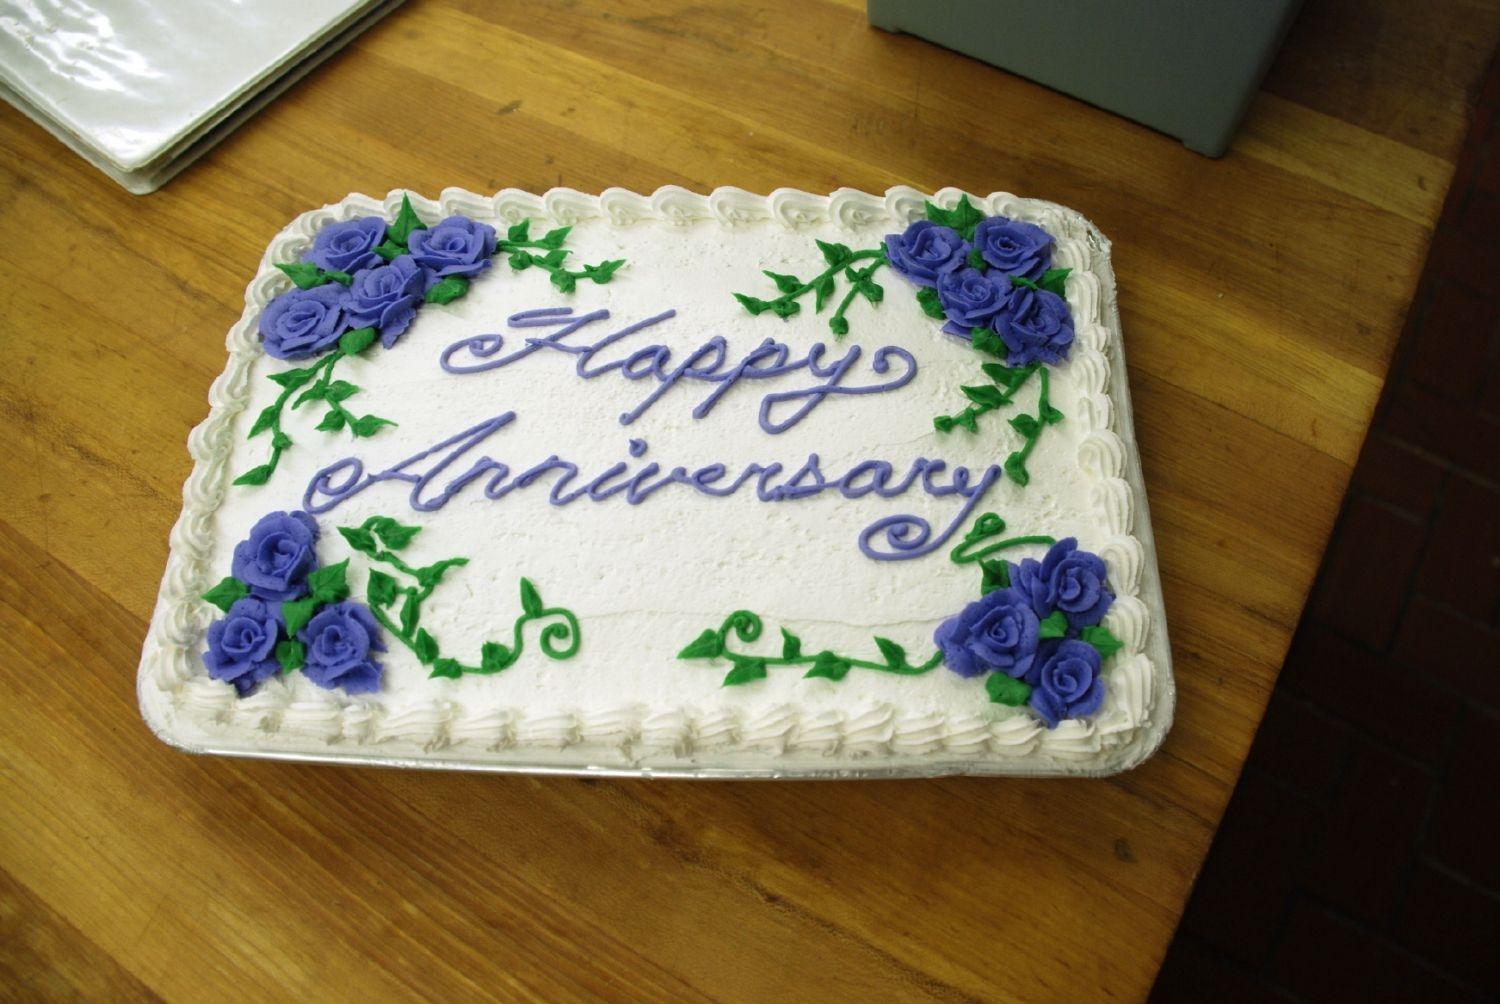 Anniversary Here is an Anniversary cake from this weekend. I used regular buttercream for the frosting and roses.